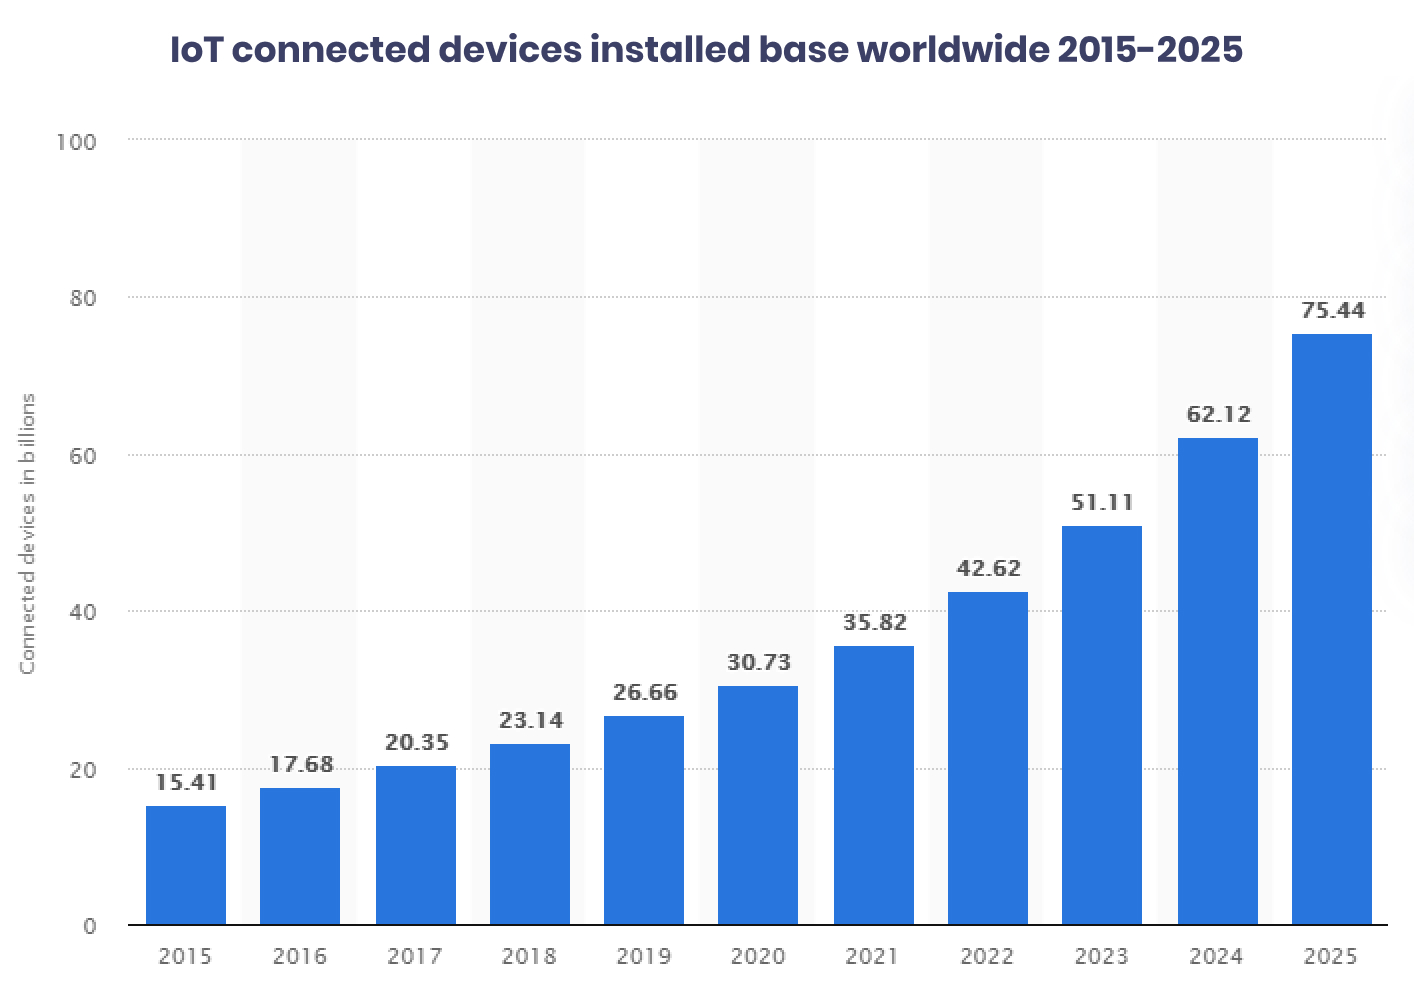 IoT connected devices installed base worldwide 2015-2025